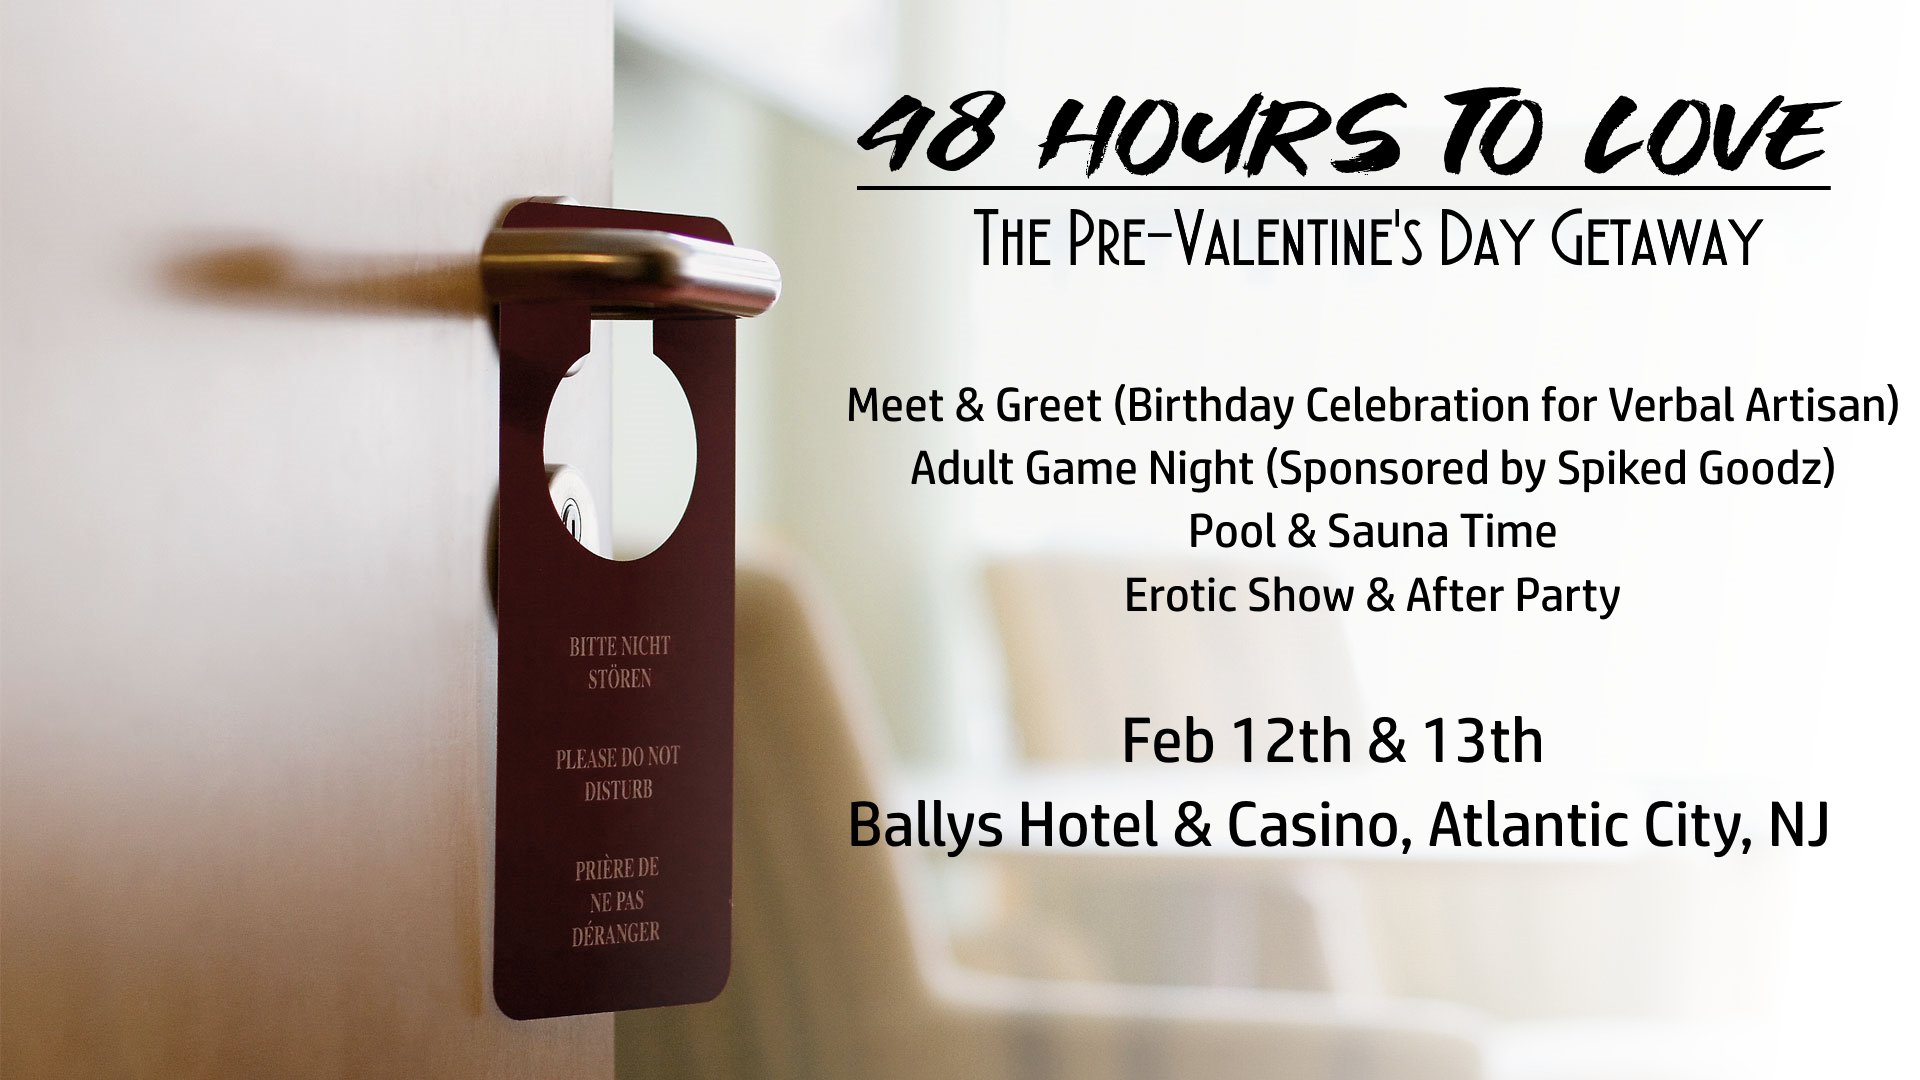 48 Hours to Love: A Valentine's Day Getaway